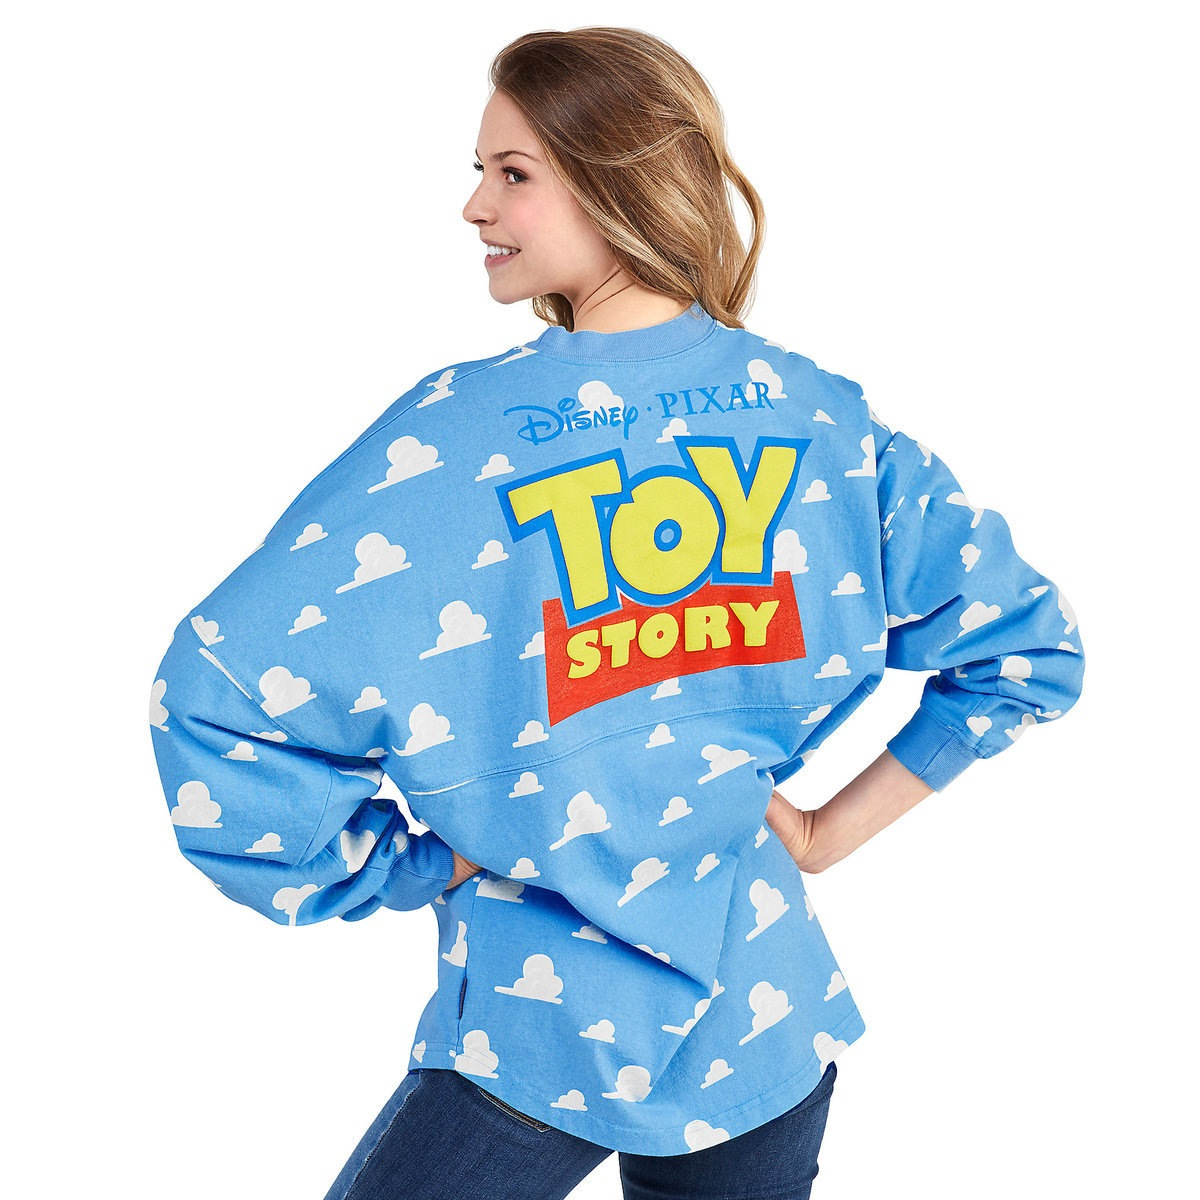 Toy Story Spirit Jersey And More Now On Shopdisney